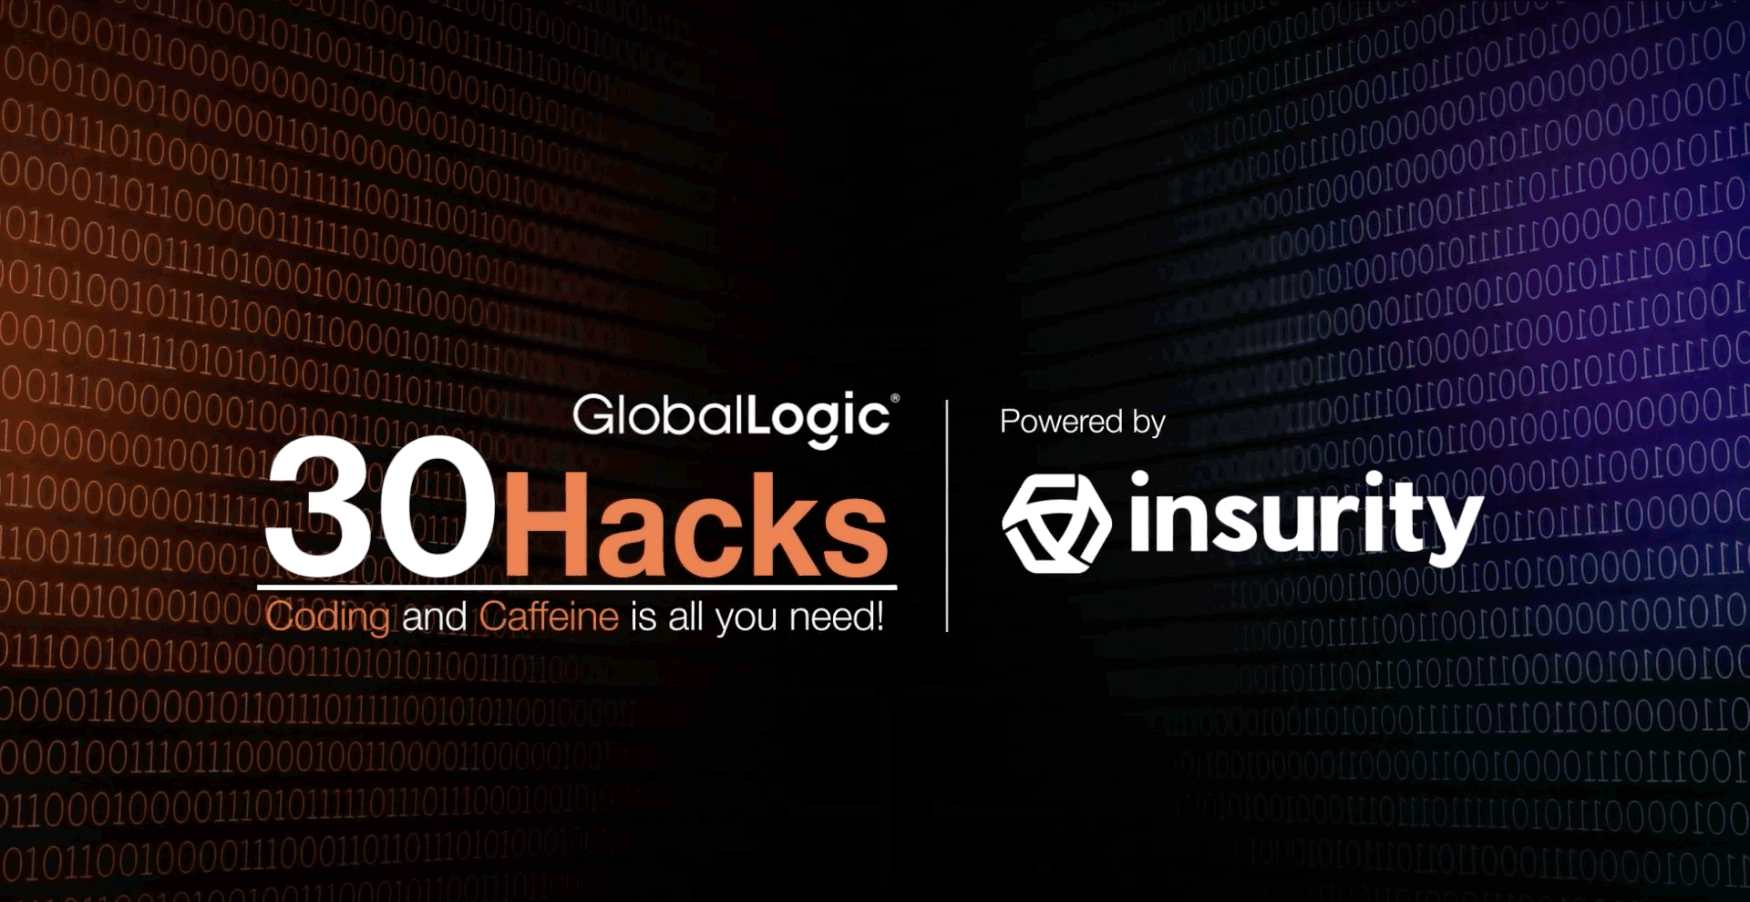 30 hacks insurity points 25